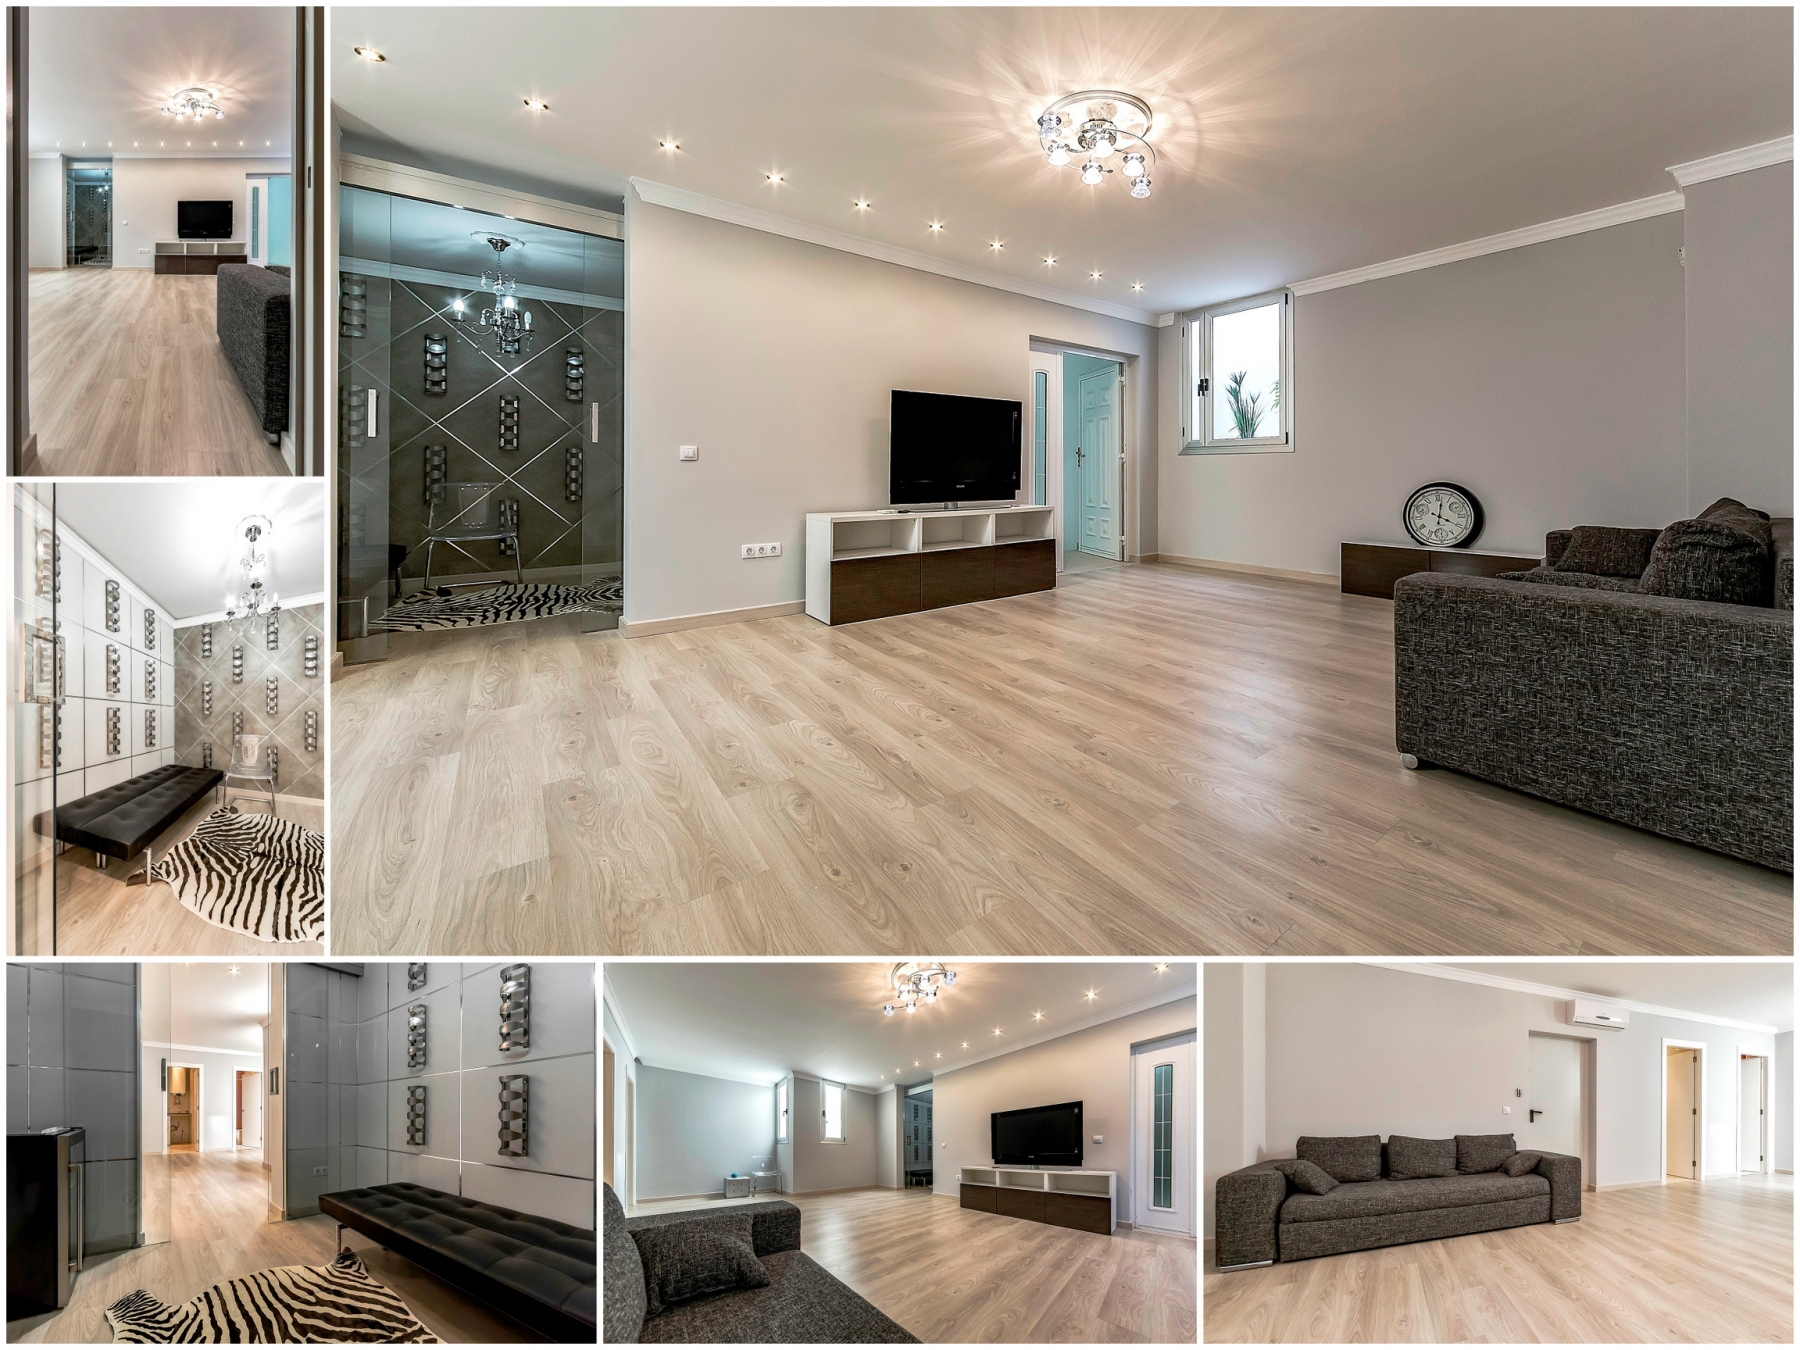 Properties for Sale in Tenerife, Canary Islands, Spain   SylkWayStar Real Estate. Luxury villa in the fashionable area of the south of the island of Tenerife – Madroñal.. Image-22847